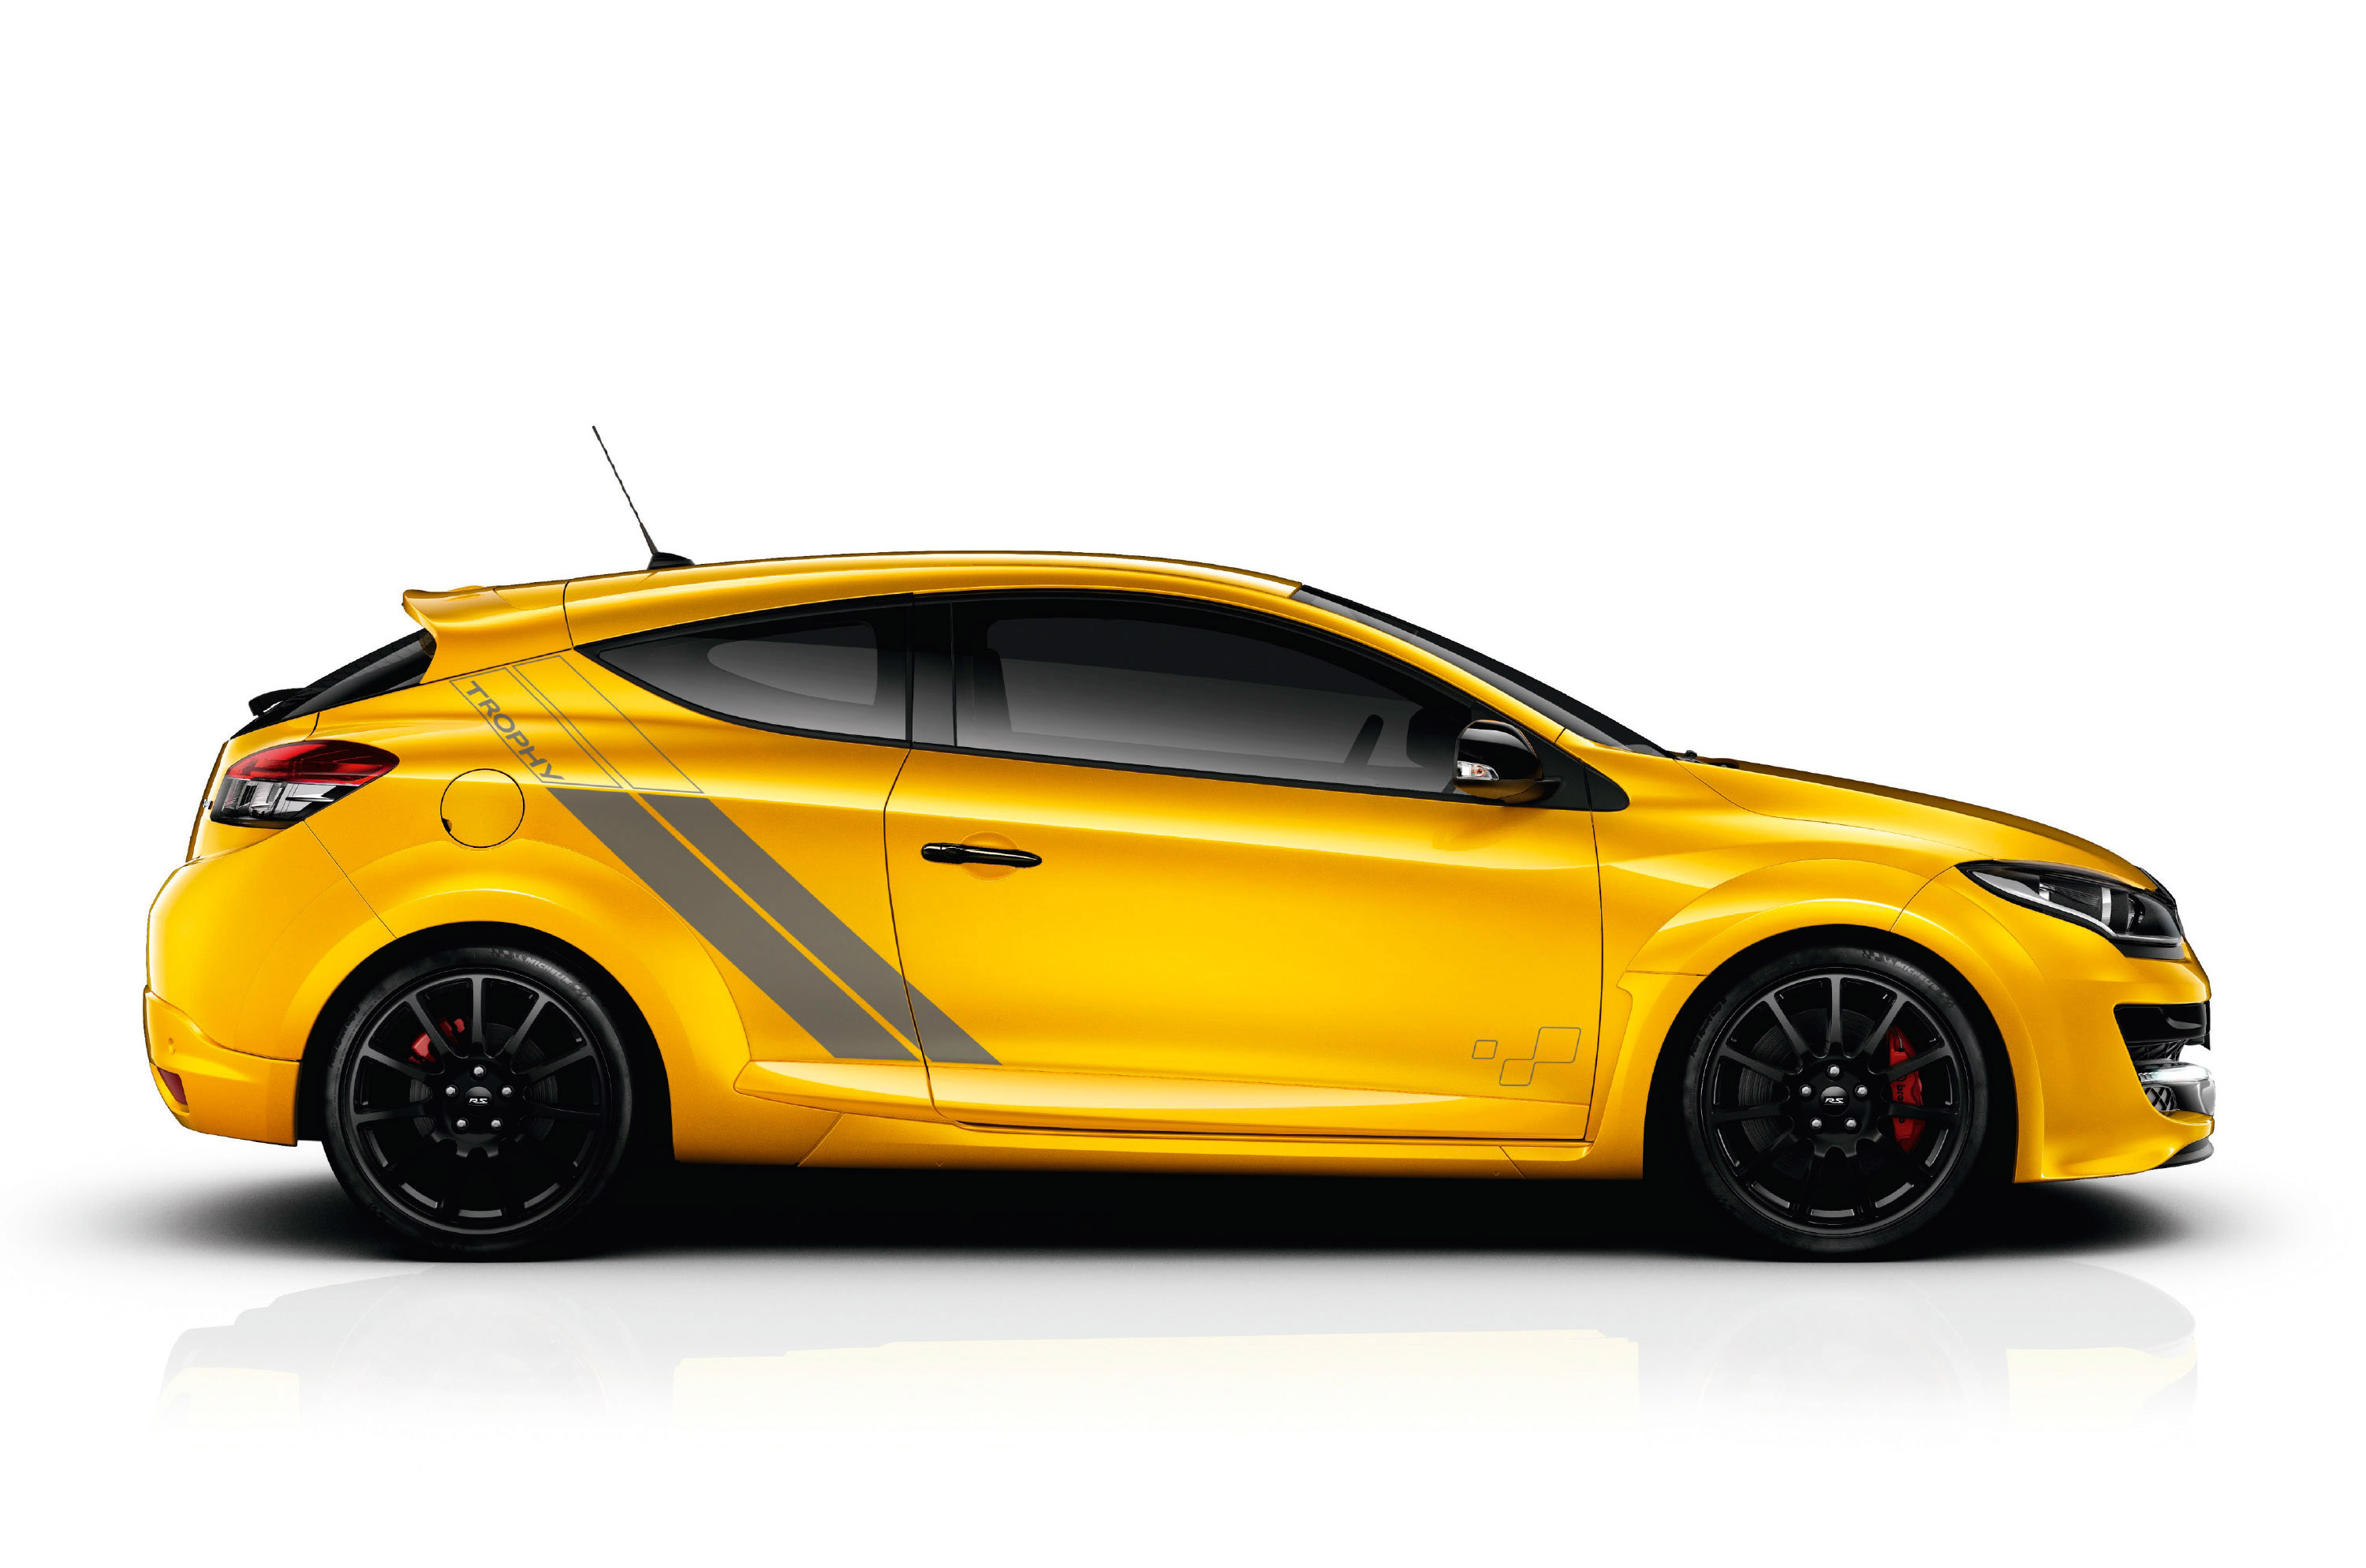 renault megane rs 275 trophy r king of the ring 7 54 3 video. Black Bedroom Furniture Sets. Home Design Ideas